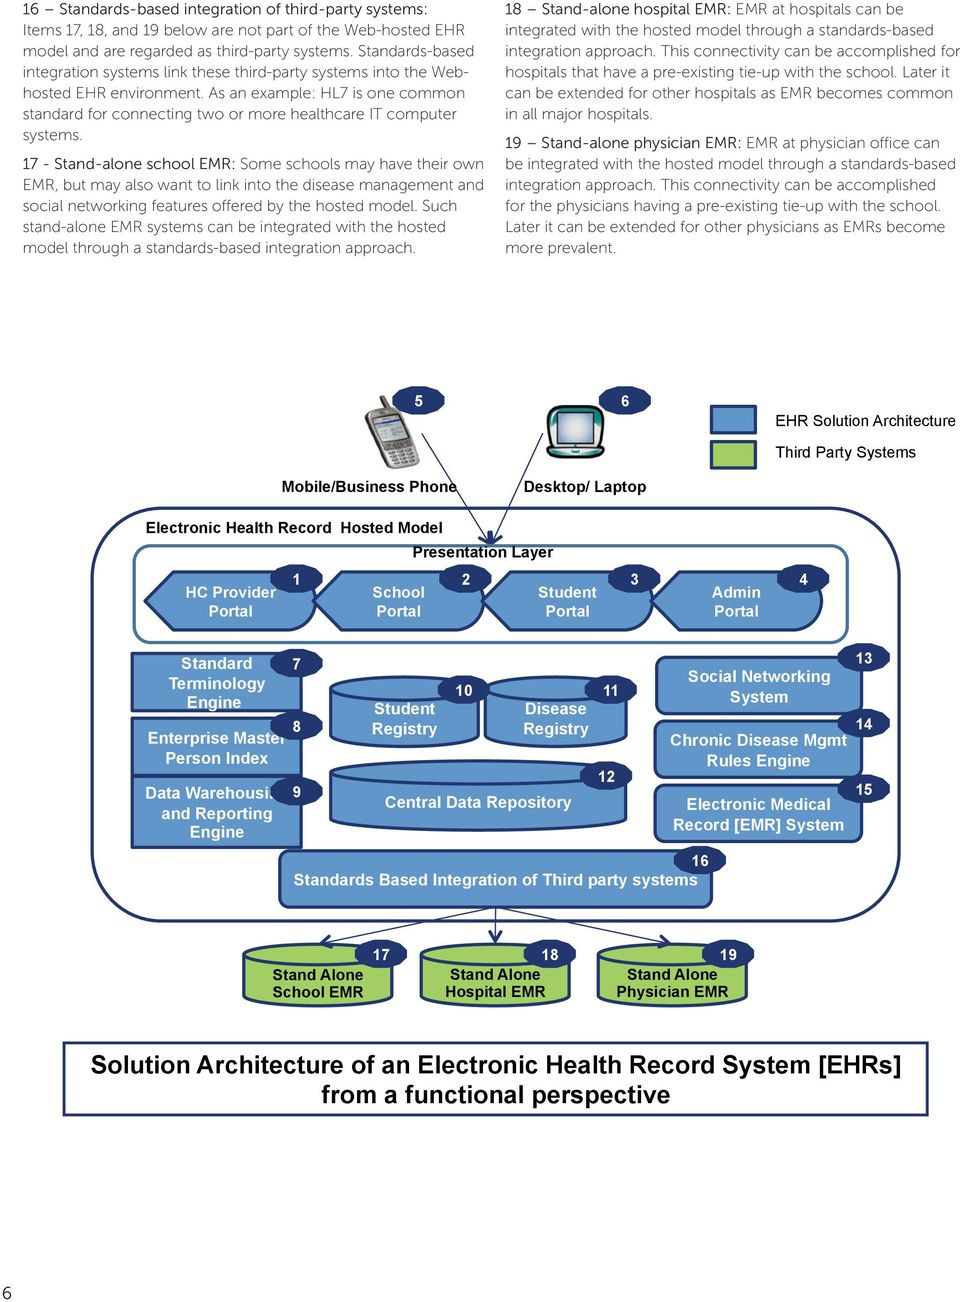 As an example: HL7 is one common standard for connecting two or more healthcare IT computer systems.